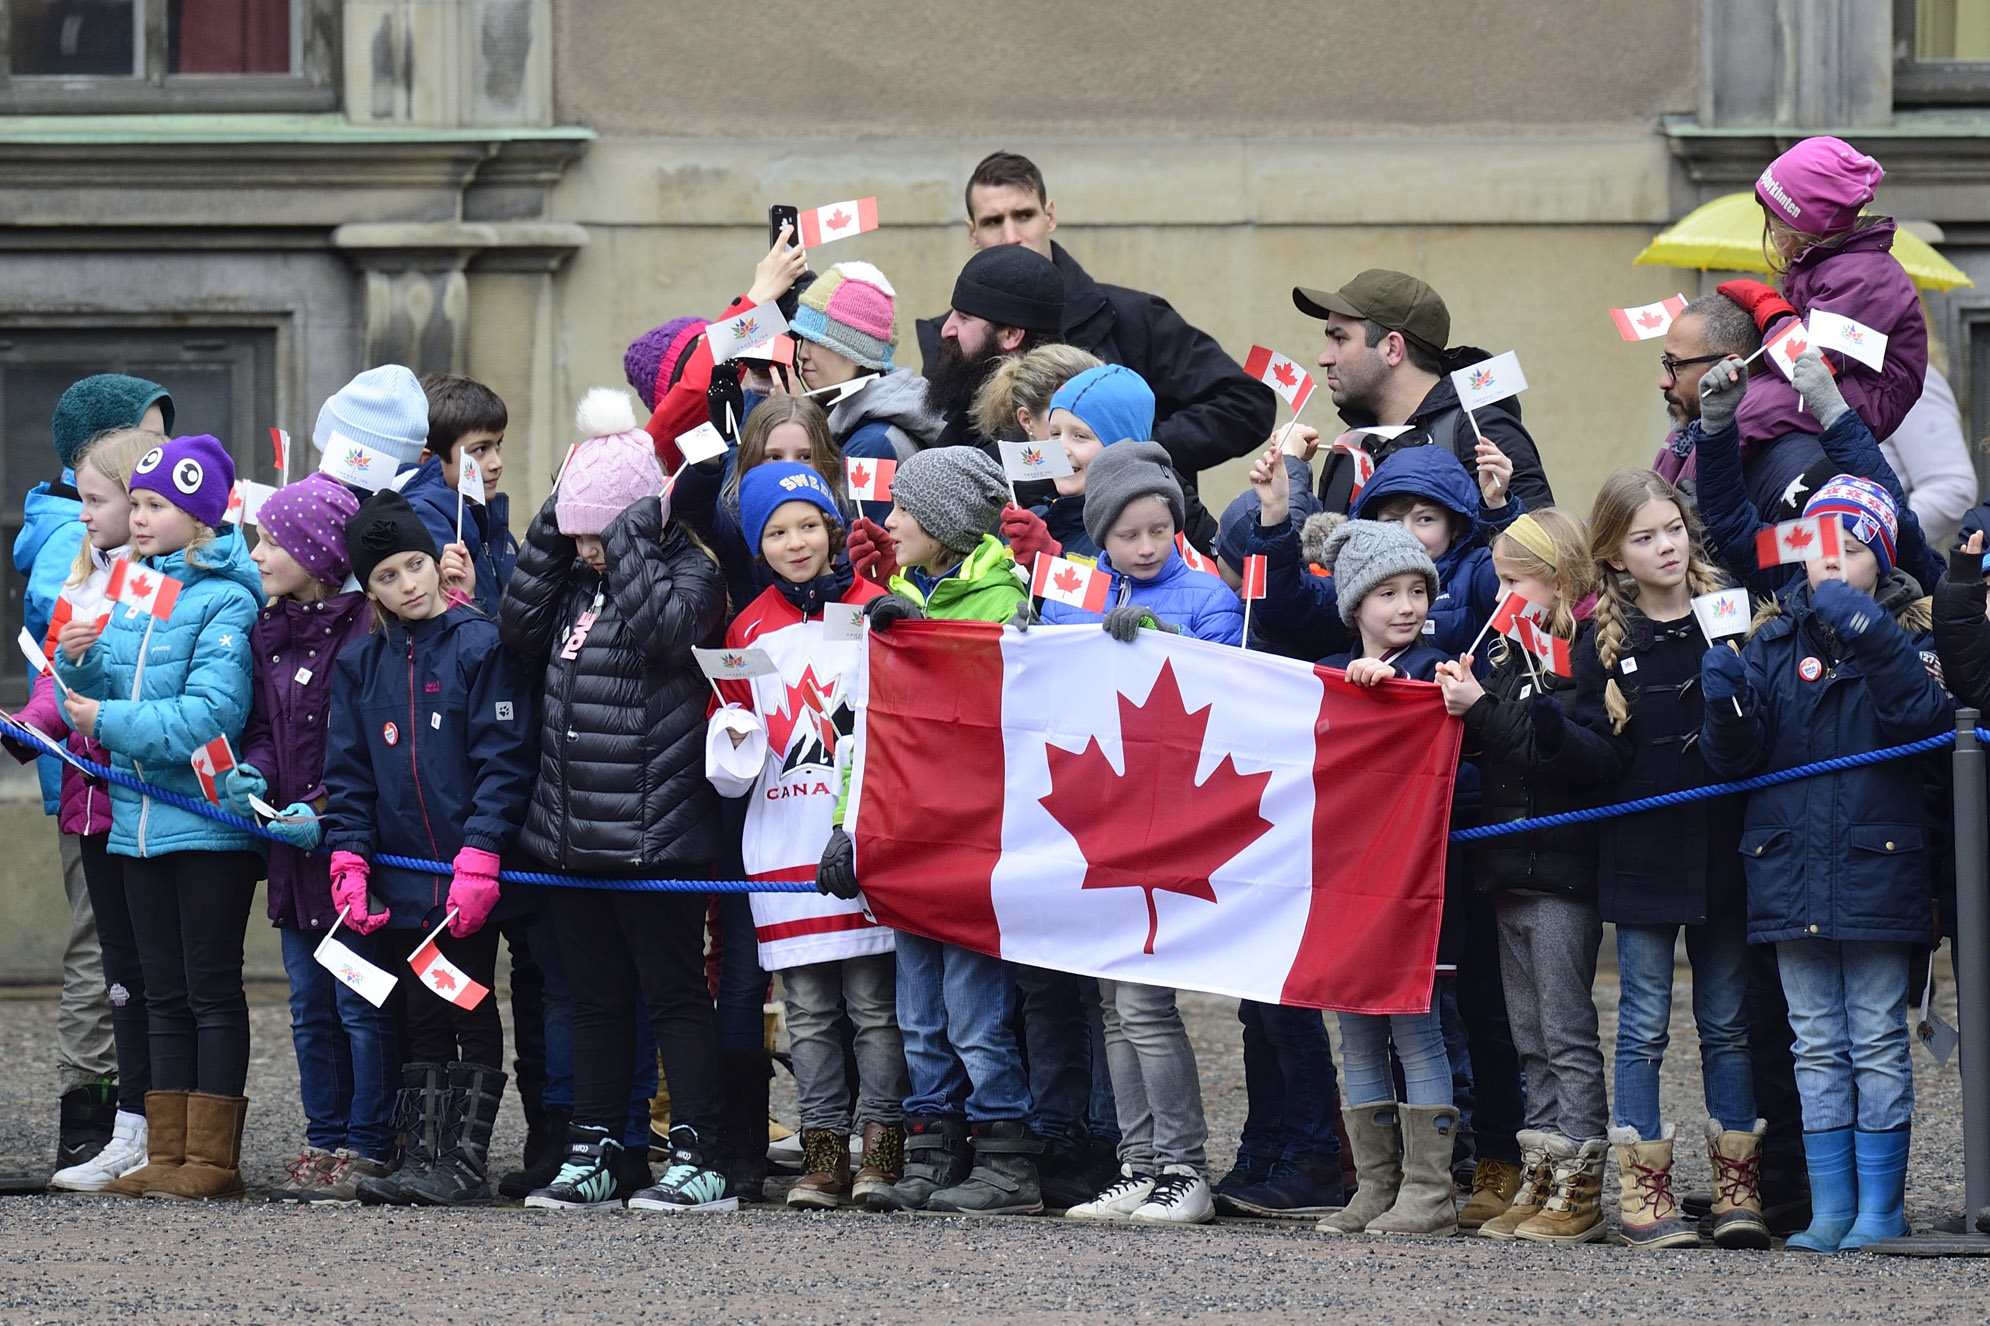 Canadians were at the Royal Palace of Stockholm waiving their Canadian flags to welcome Their Excellencies and members of the delegation.